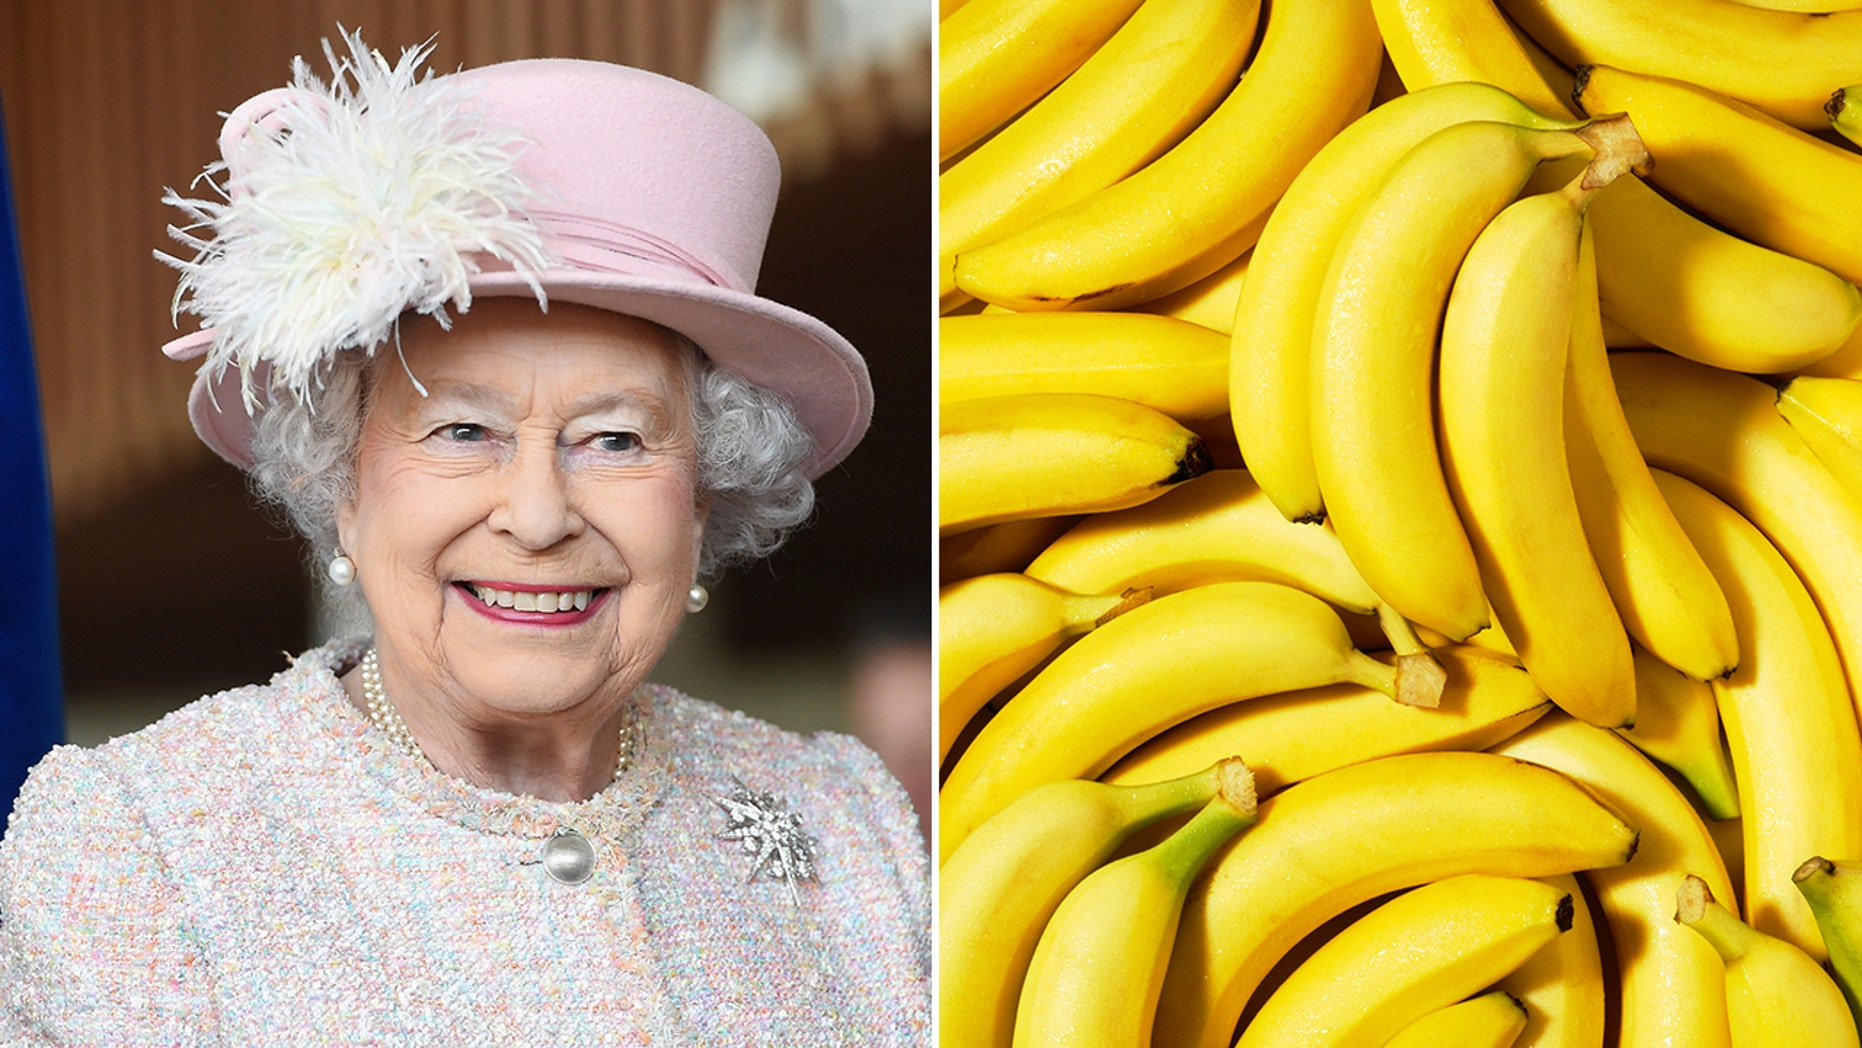 Apparently the queen only eats bananas with a fork and knife.